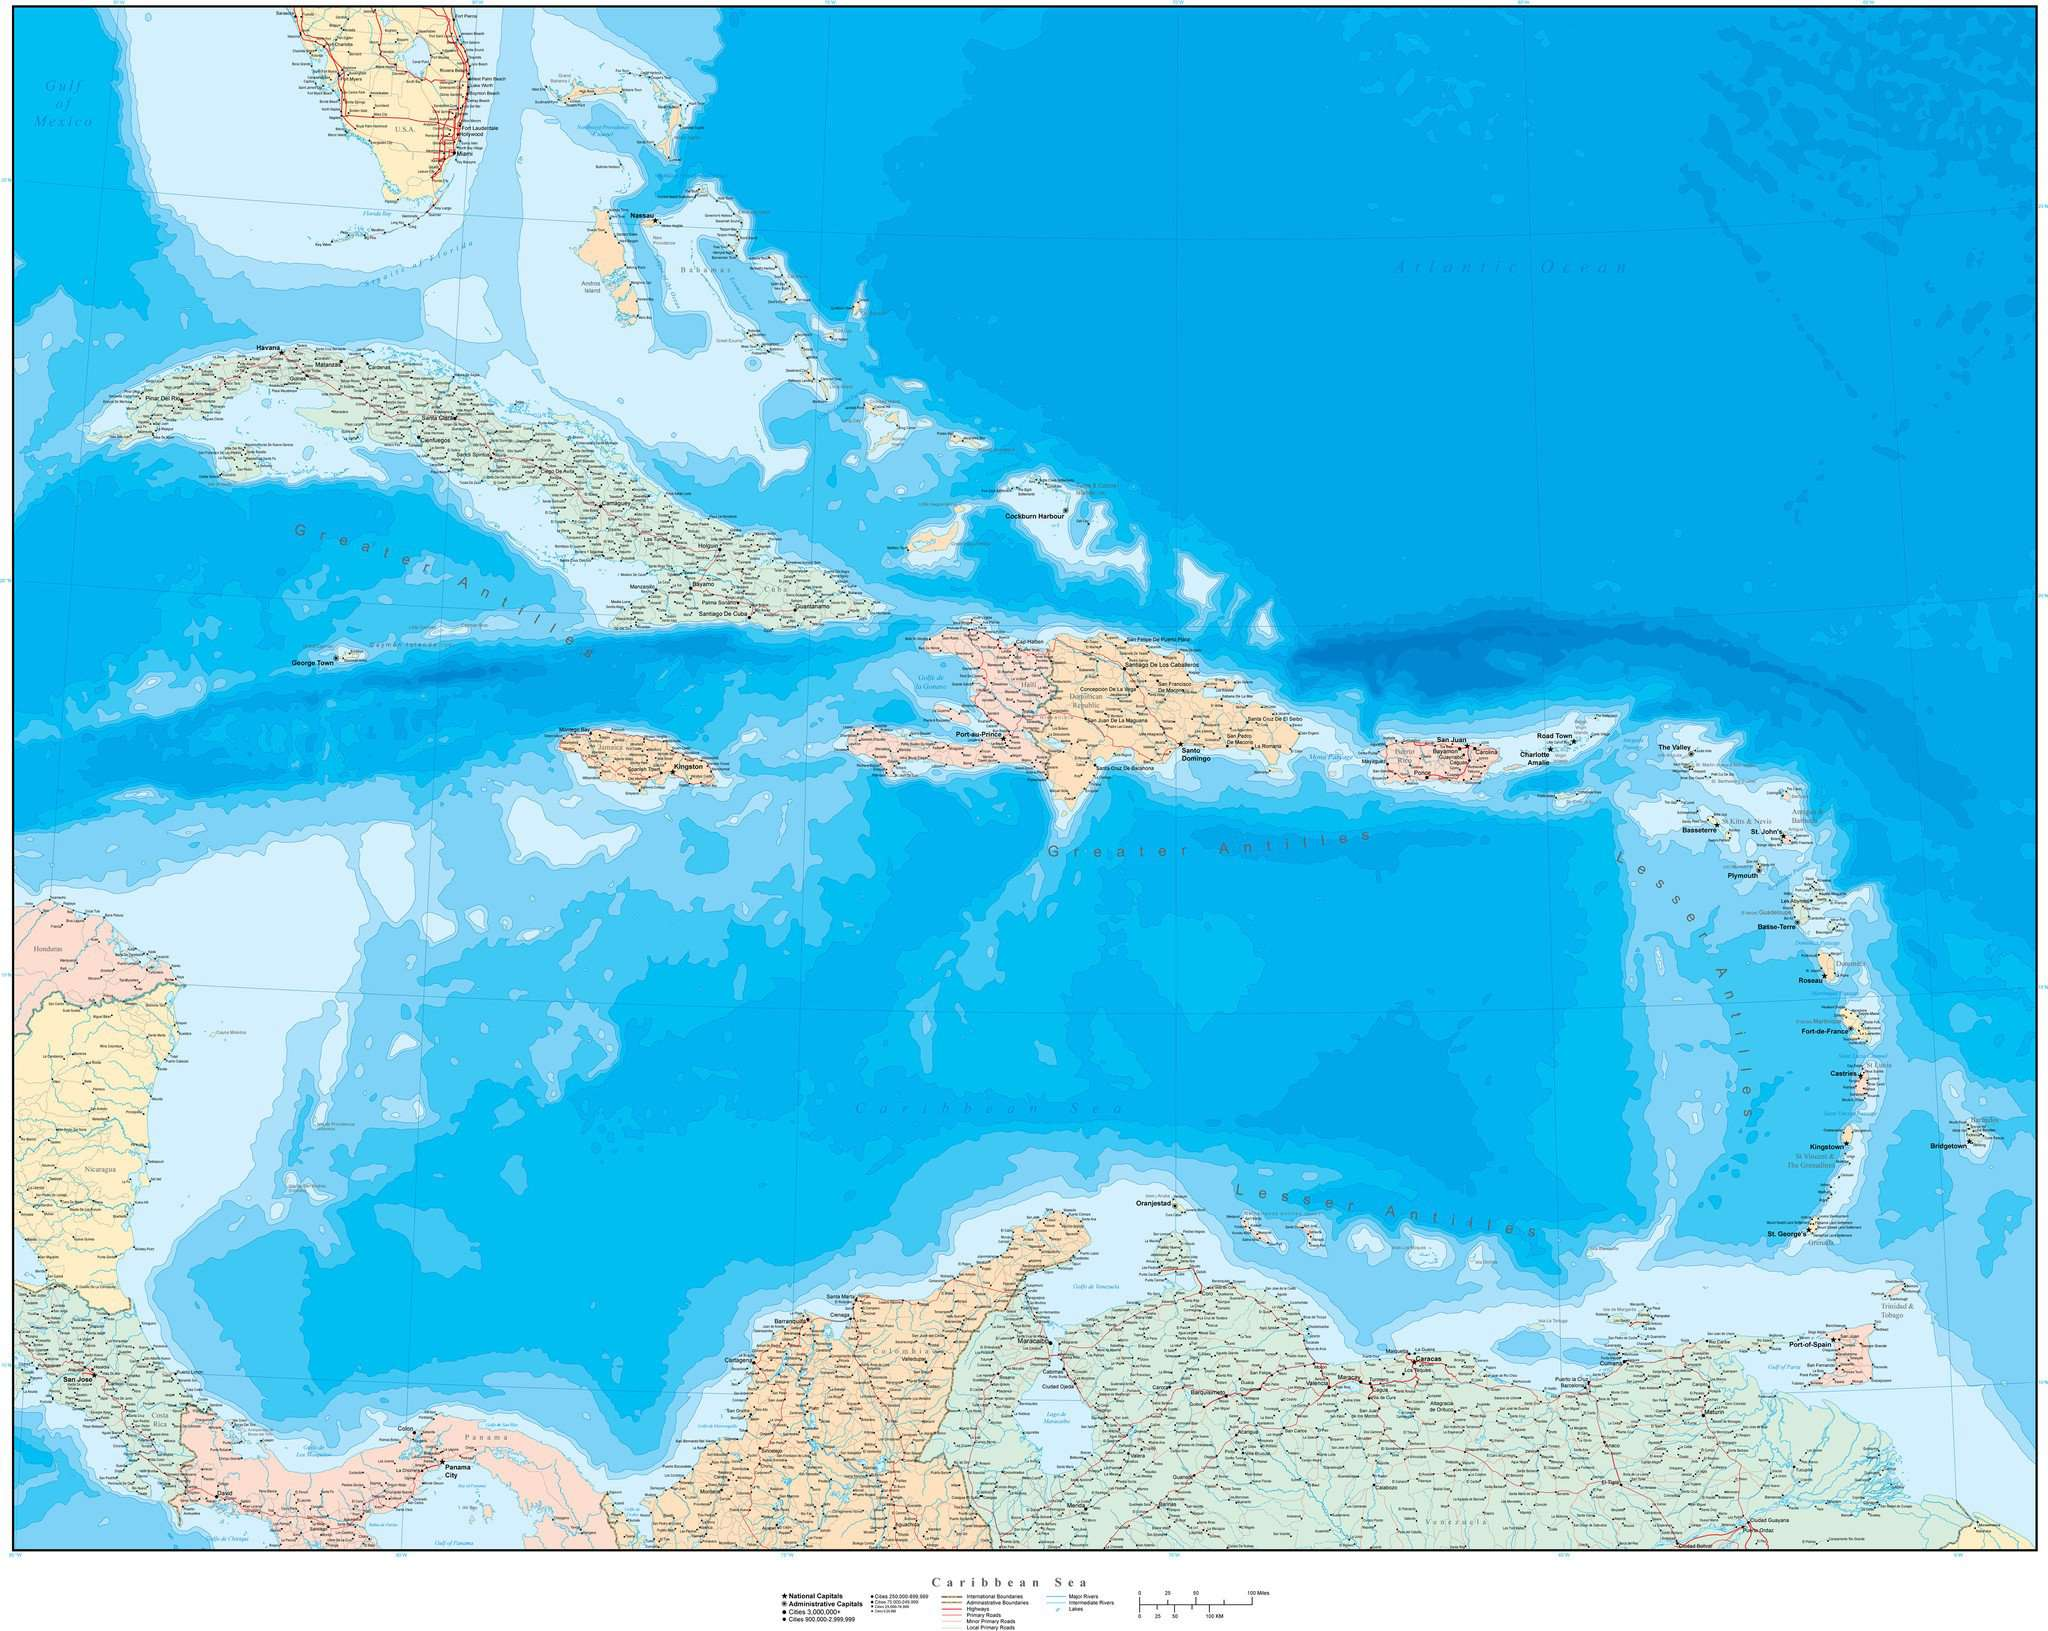 Poster Size Caribbean Sea Map with Contours